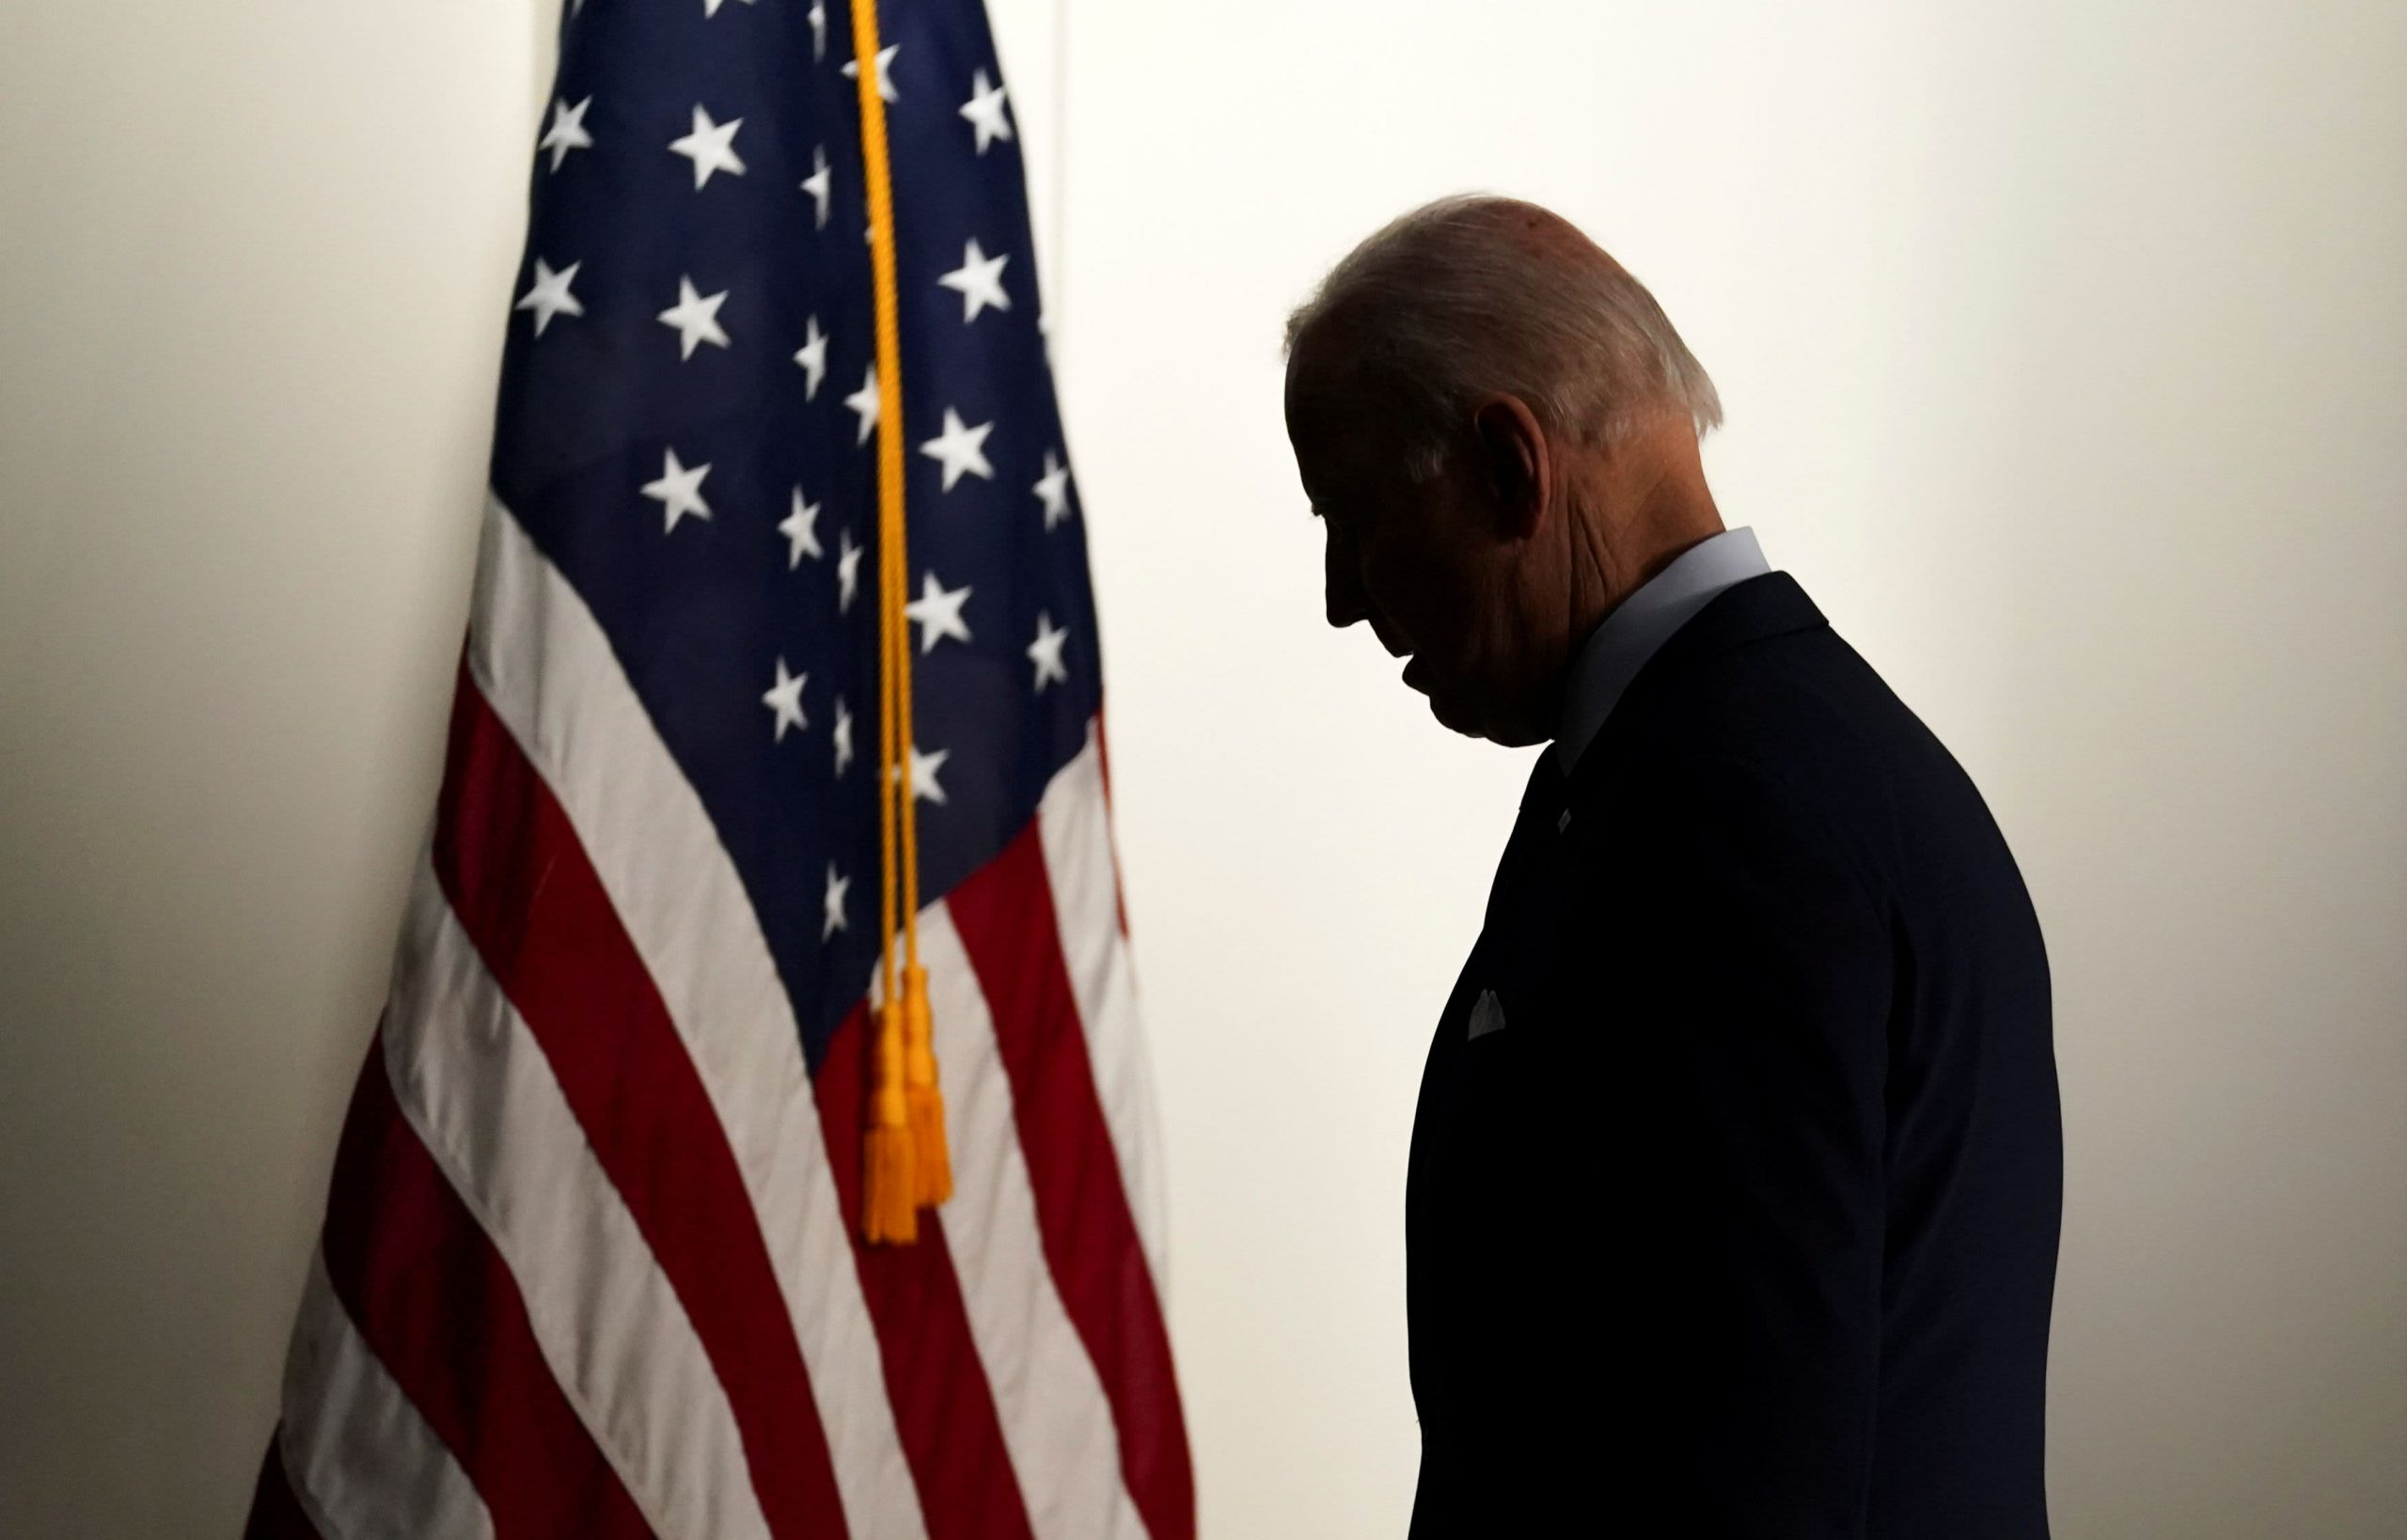 Biden is securing America's place in world with infrastructure plan